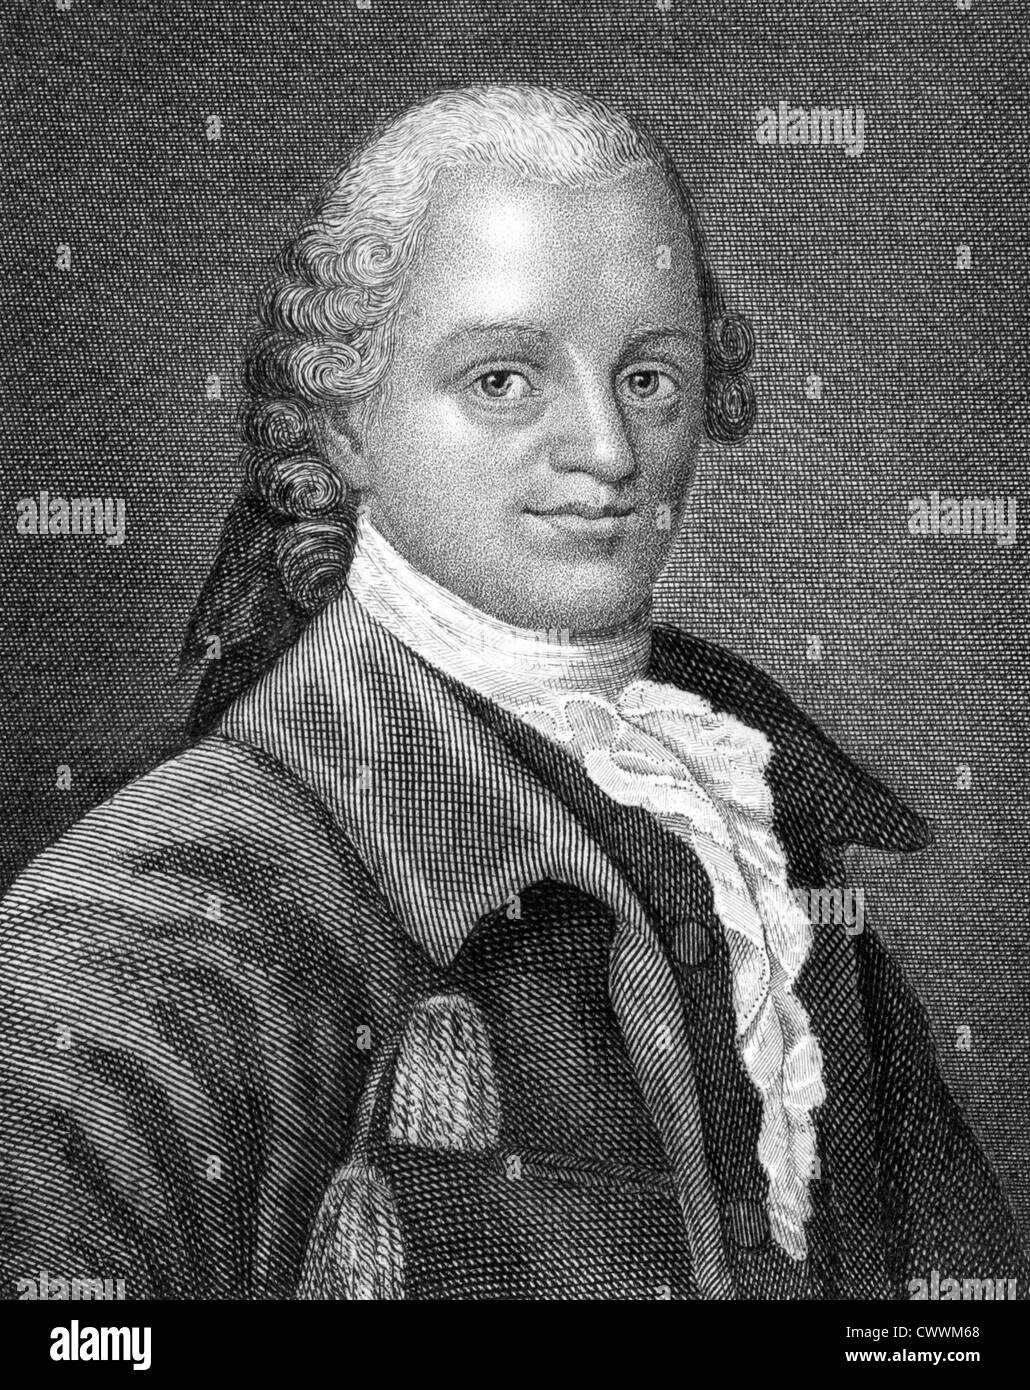 Gotthold Ephraim Lessing (1729-1781) on engraving from 1859. German writer, philosopher, dramatist, publicist and - Stock Image